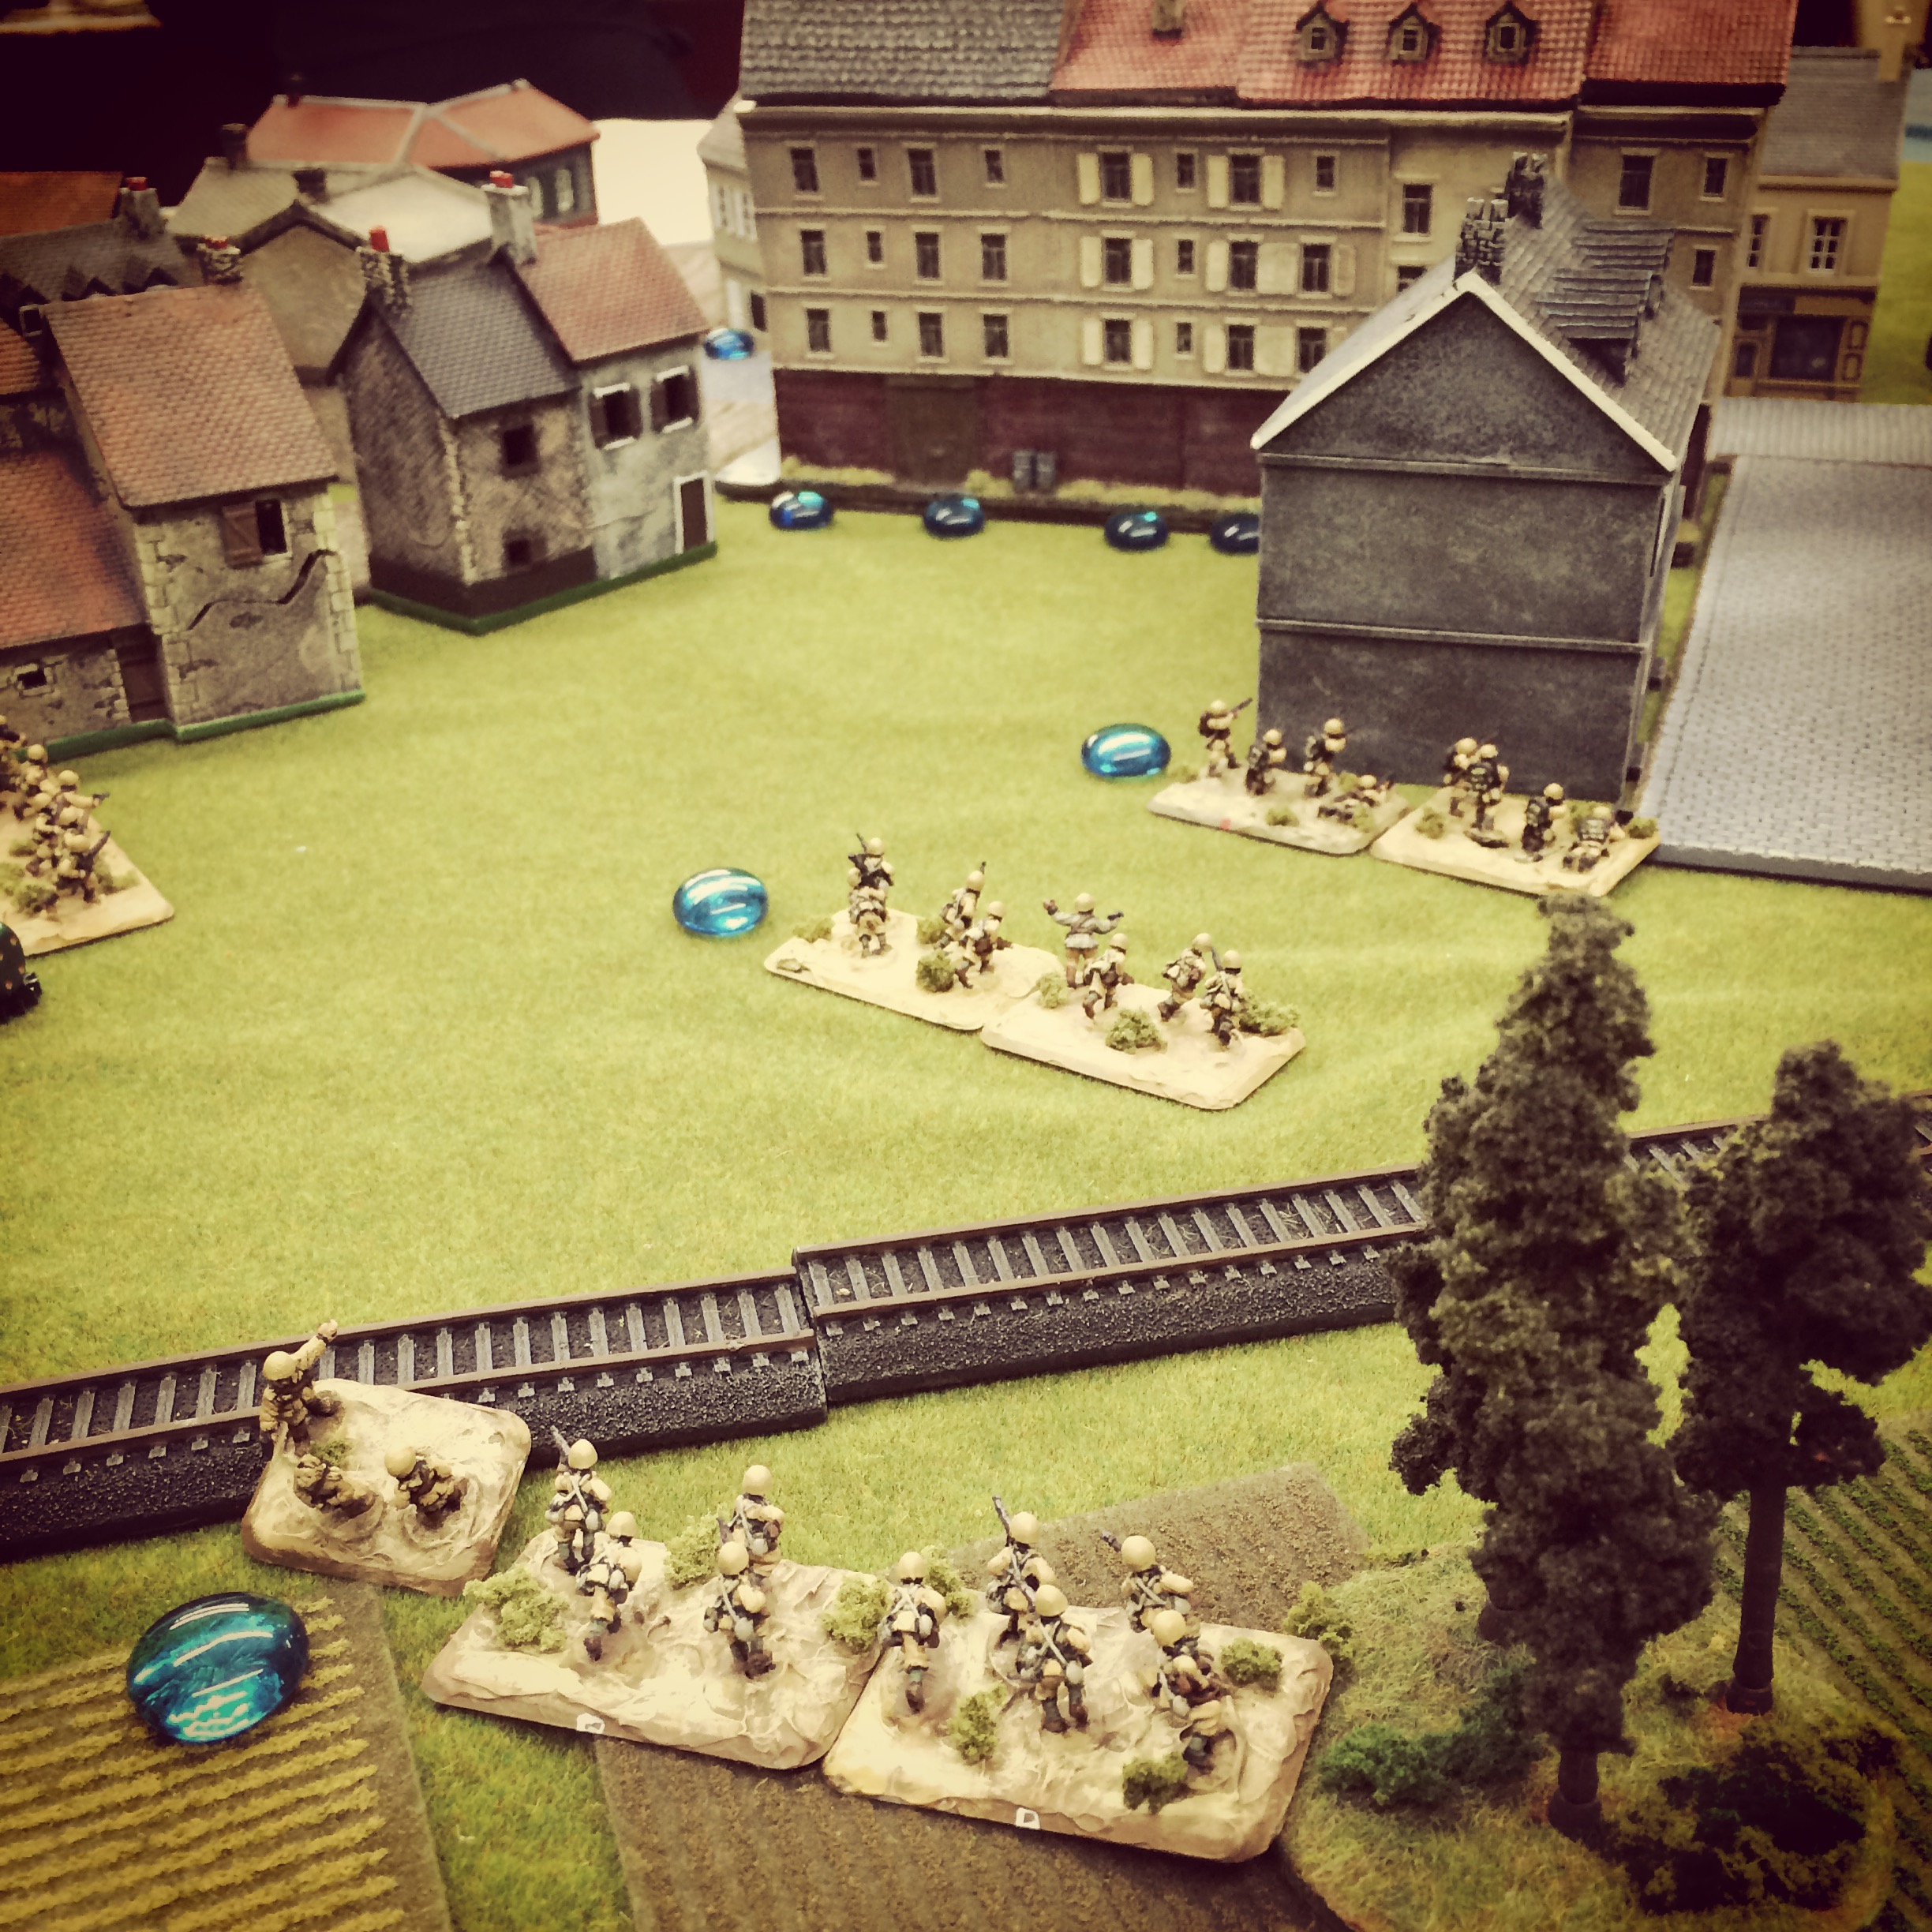 Italians encounter fire from US engineers defending from buildings